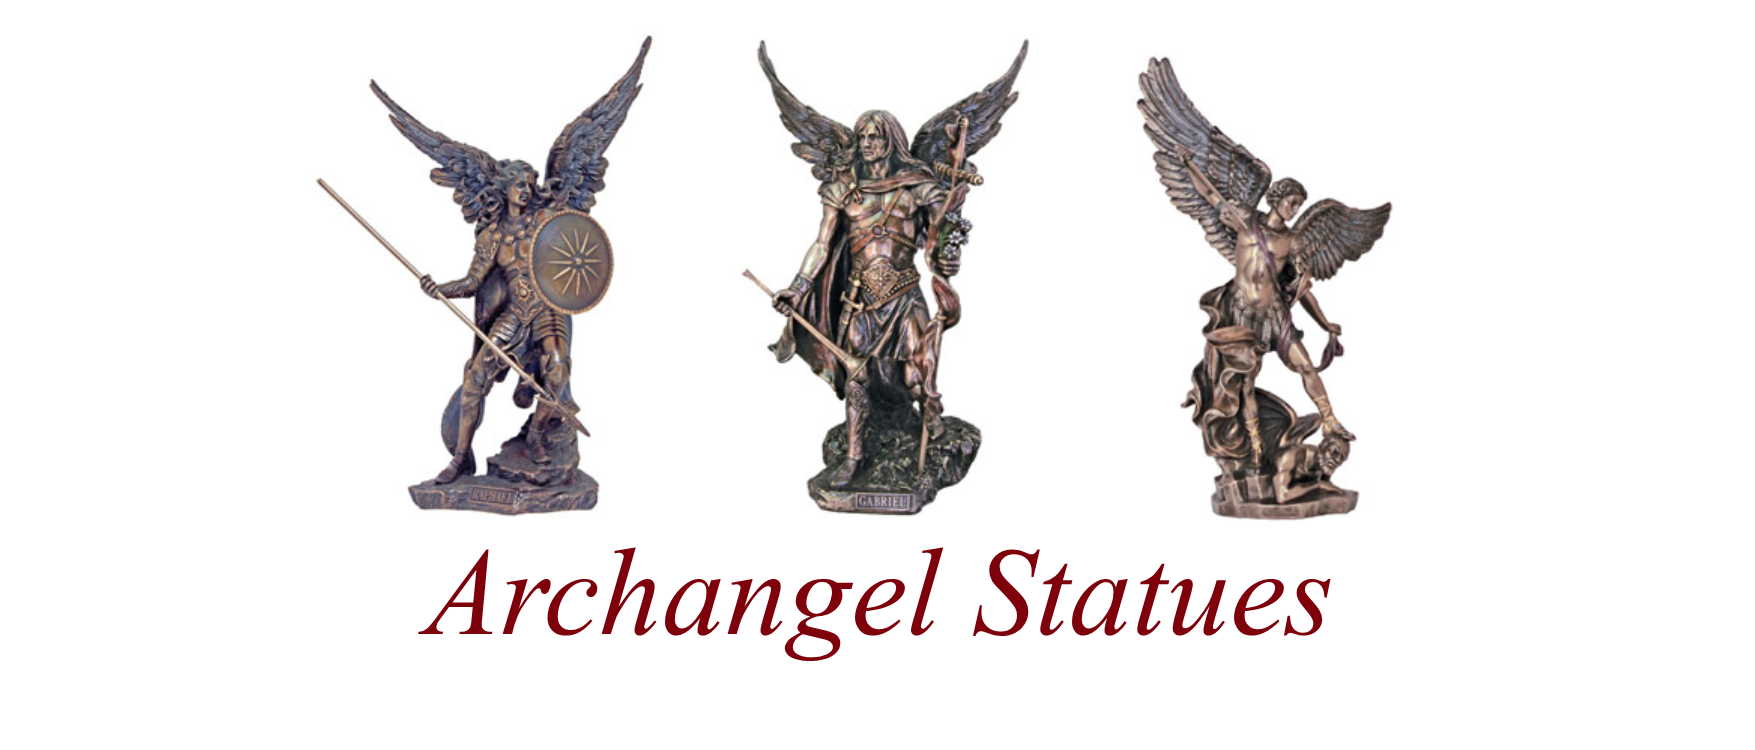 Archangel Statues Banner (Red)